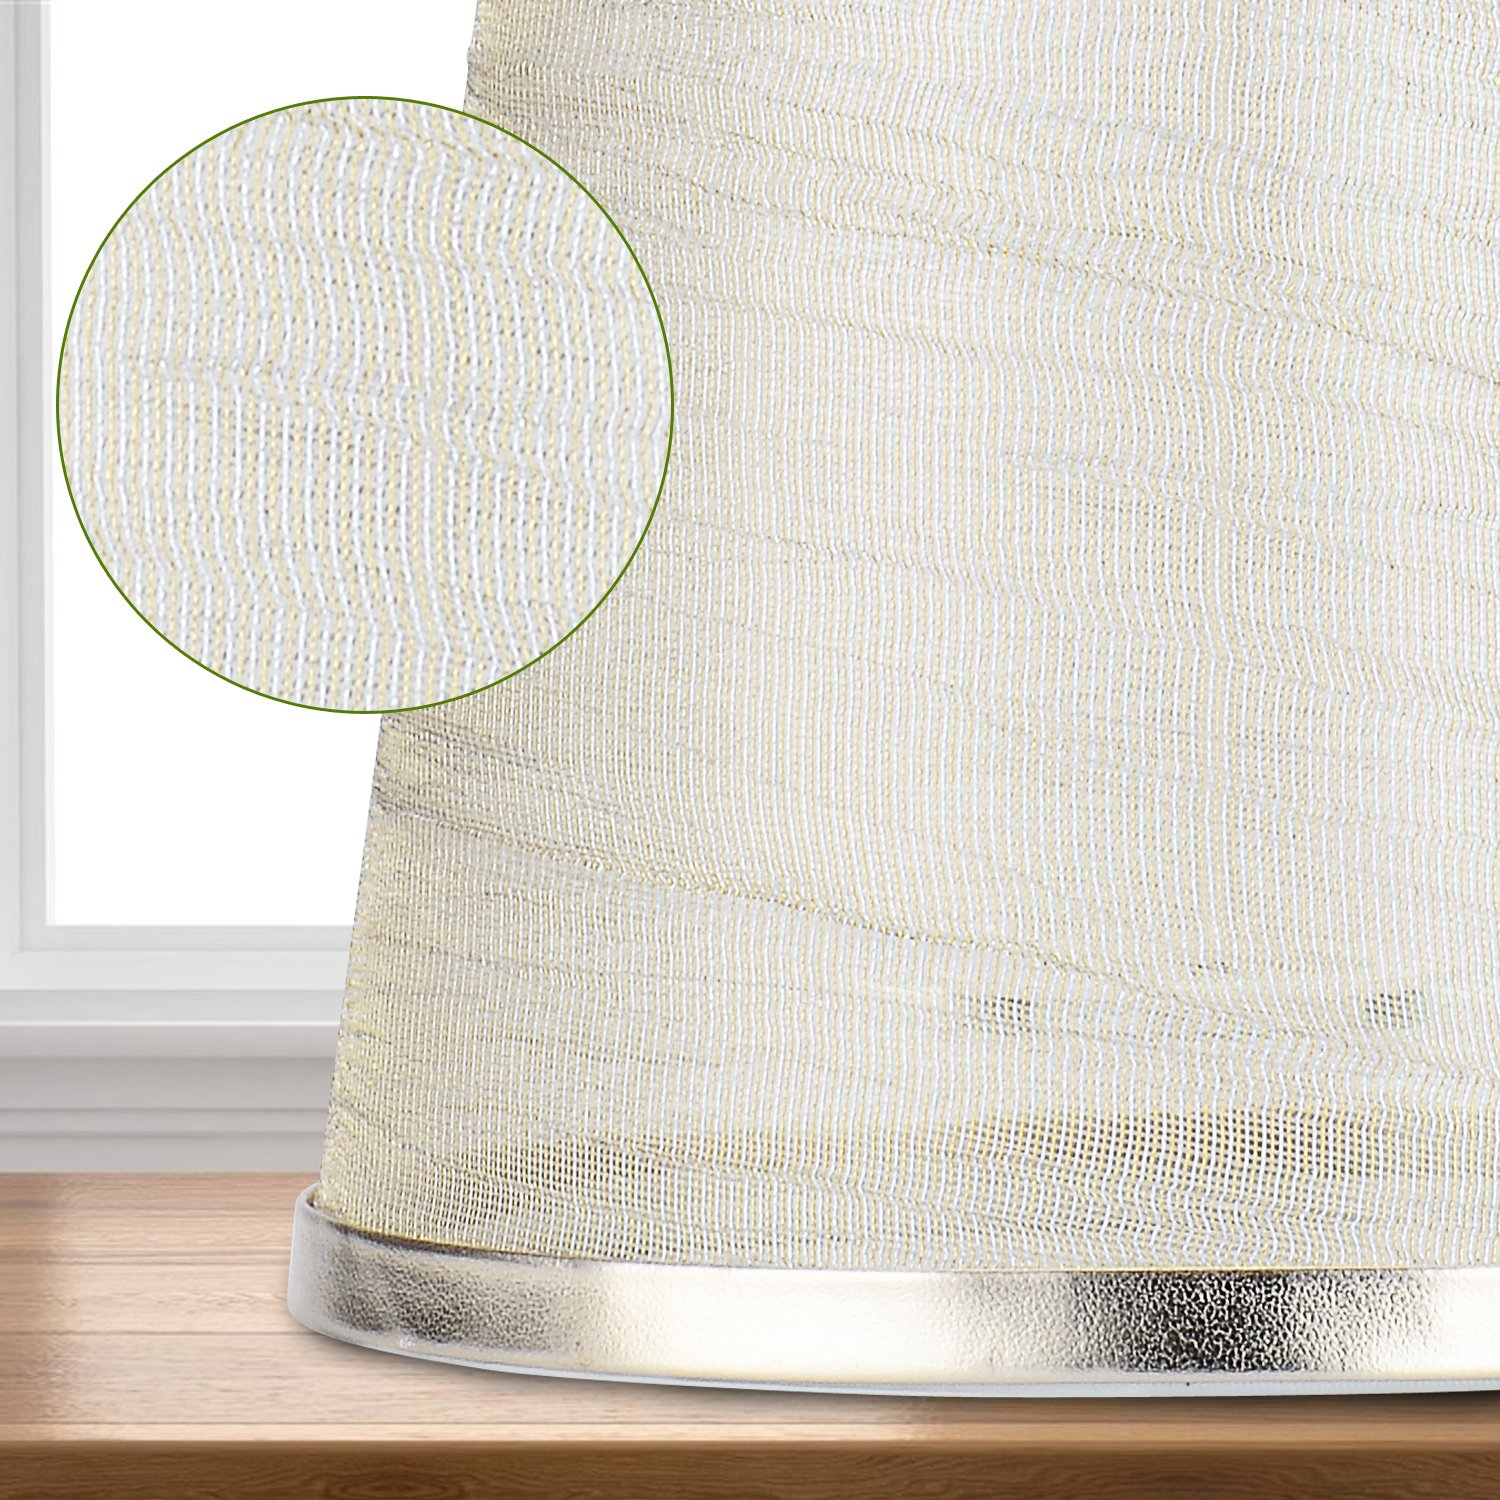 Cleeacc Creative Transparent Lamp Shades for Table Lamps Small Clip on (4x6x5.5in) Chandelier Handmade Modern E14 Screw Lampshade Classic Simple Style Crystal Candle Glass Lamp Shade Cloth Design 1 by Cleeacc (Image #4)